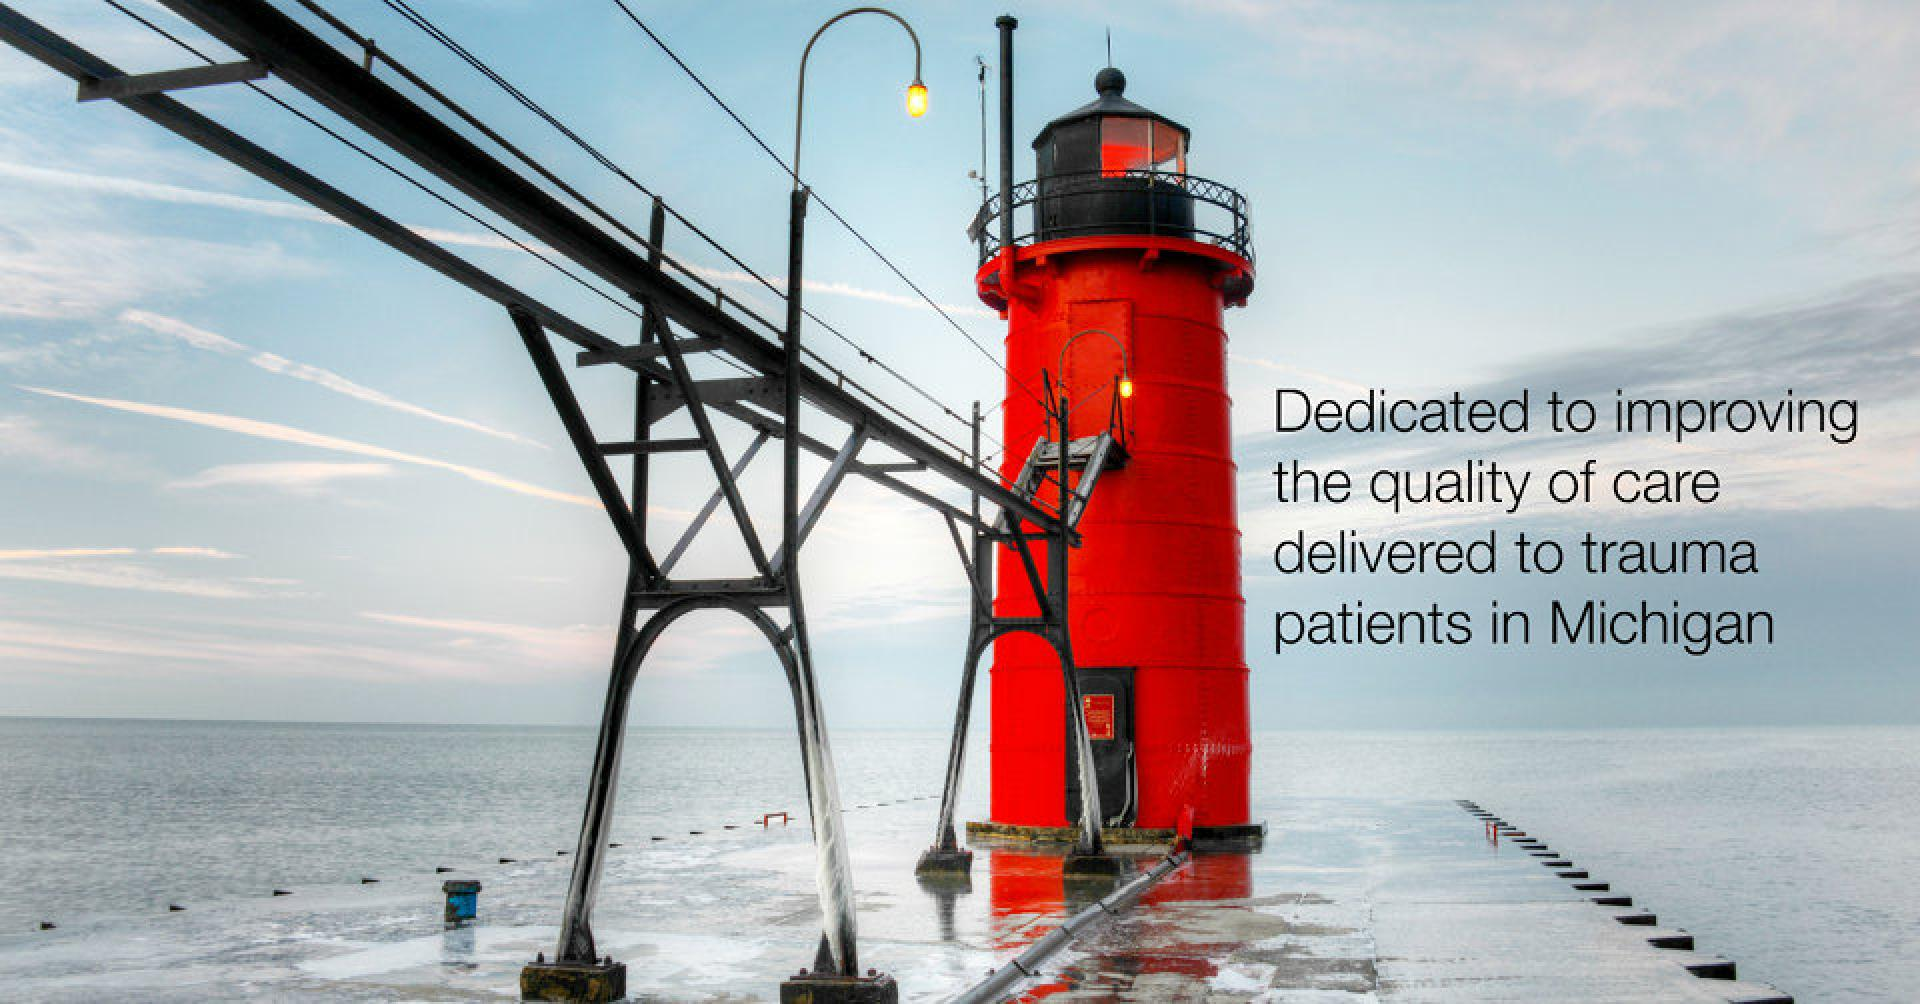 MTQIP: dedicated to improving the quality of care delivered to trauma patients in Michigan